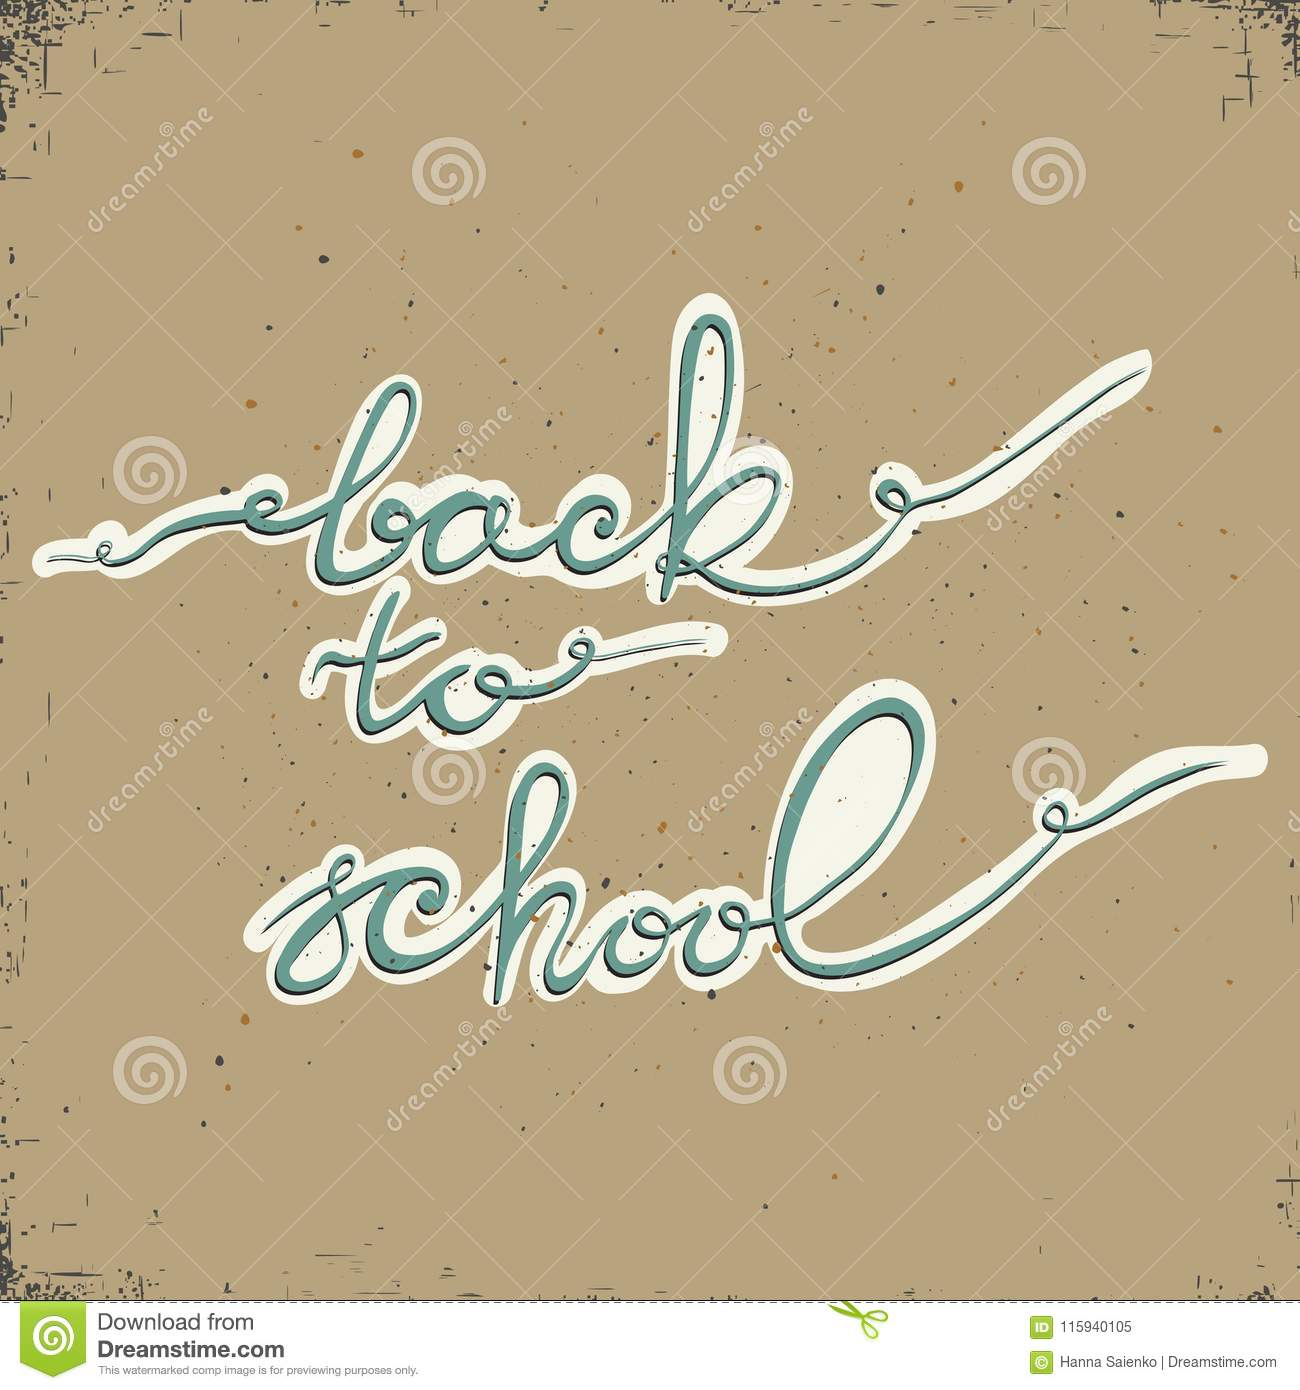 Back to school. Typography and lettering print template. Graphic design for back to school poster, advertising.